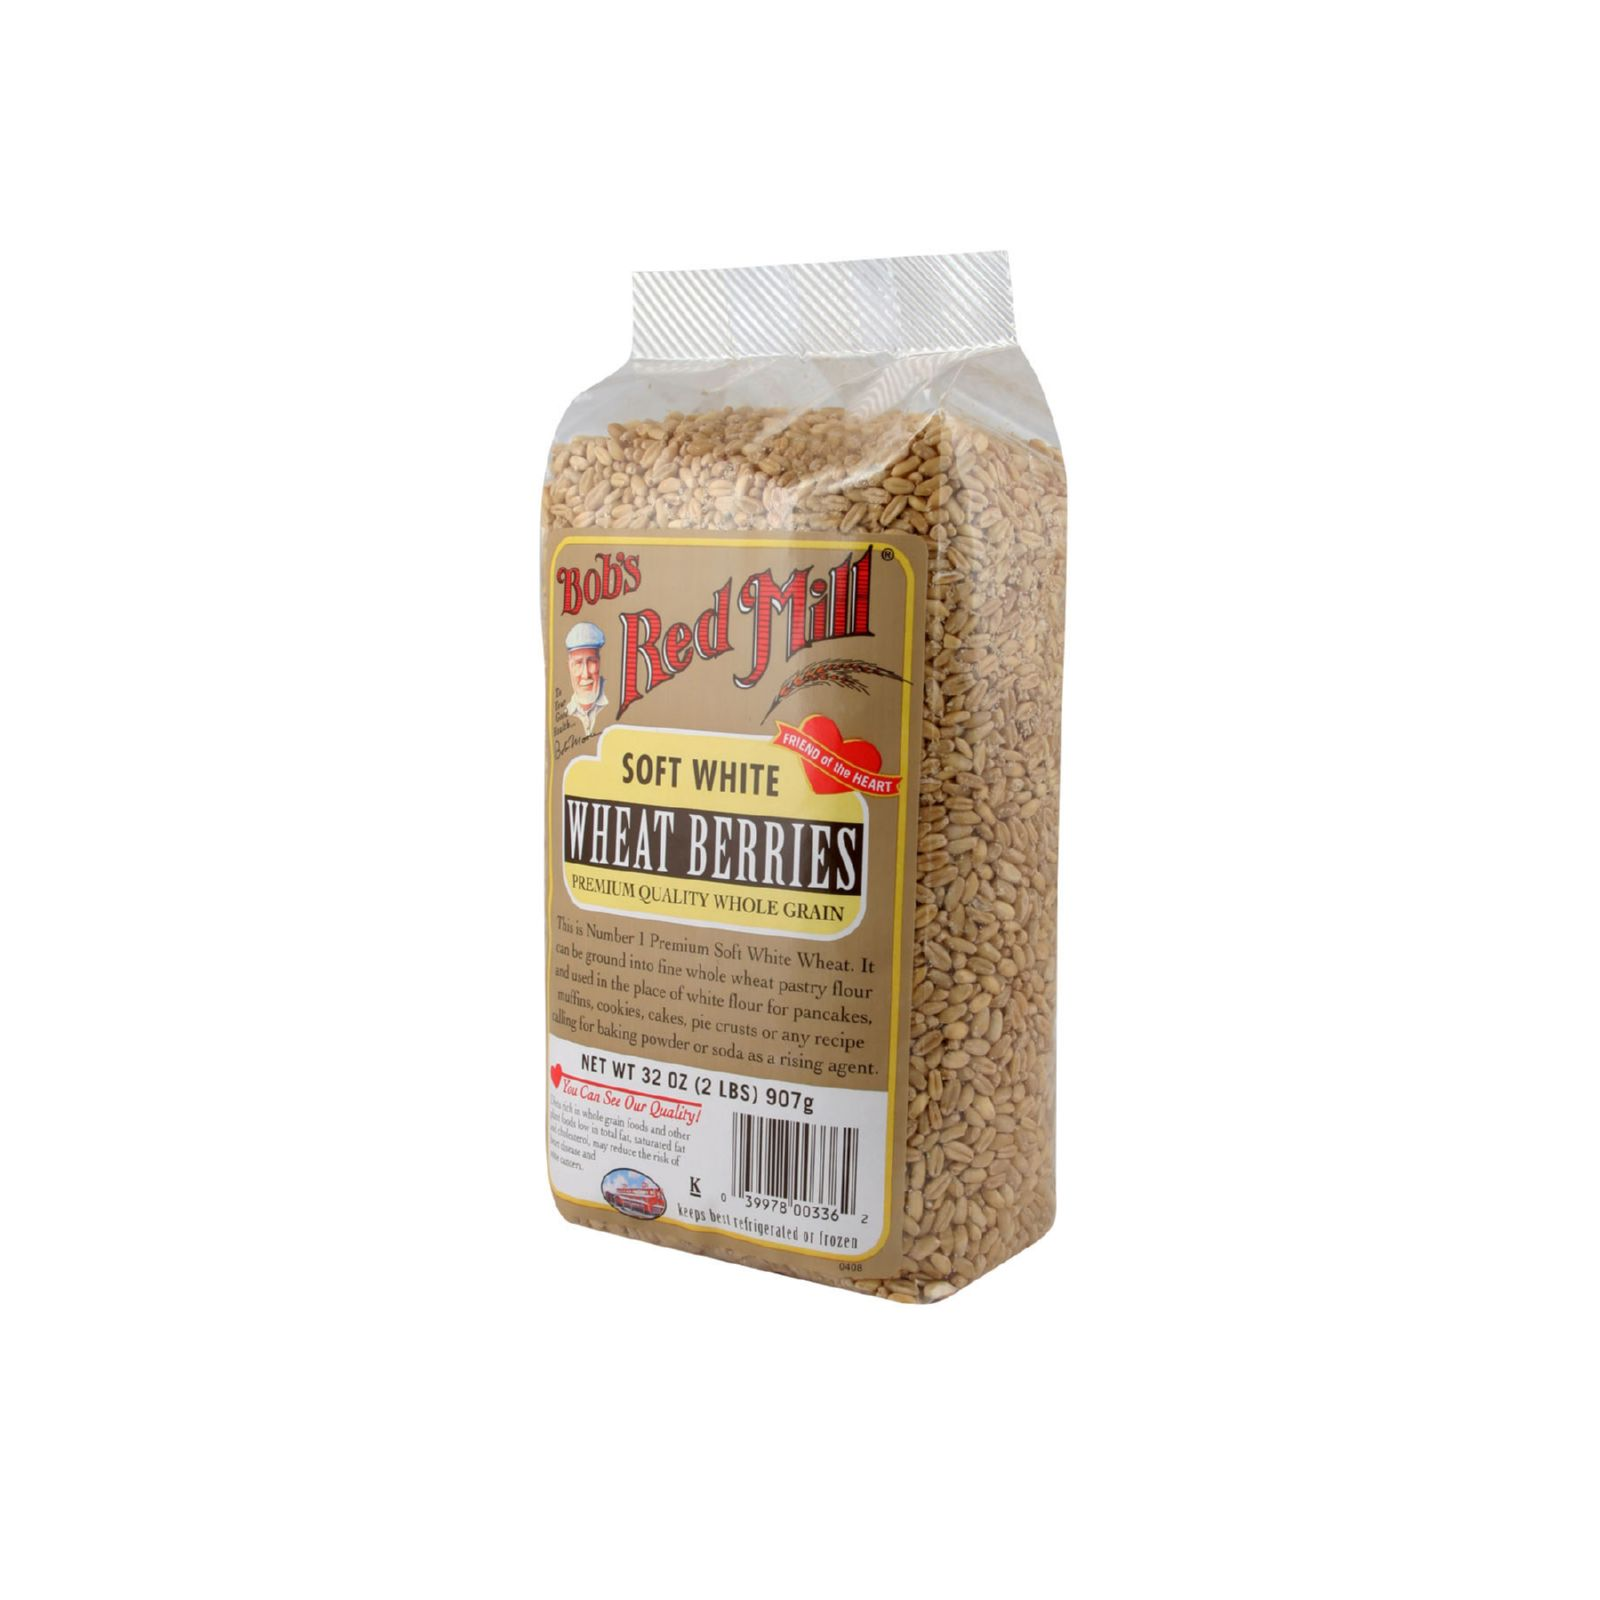 Bob's Red Mill Soft White Wheat Berries - 32 oz - Case of 4